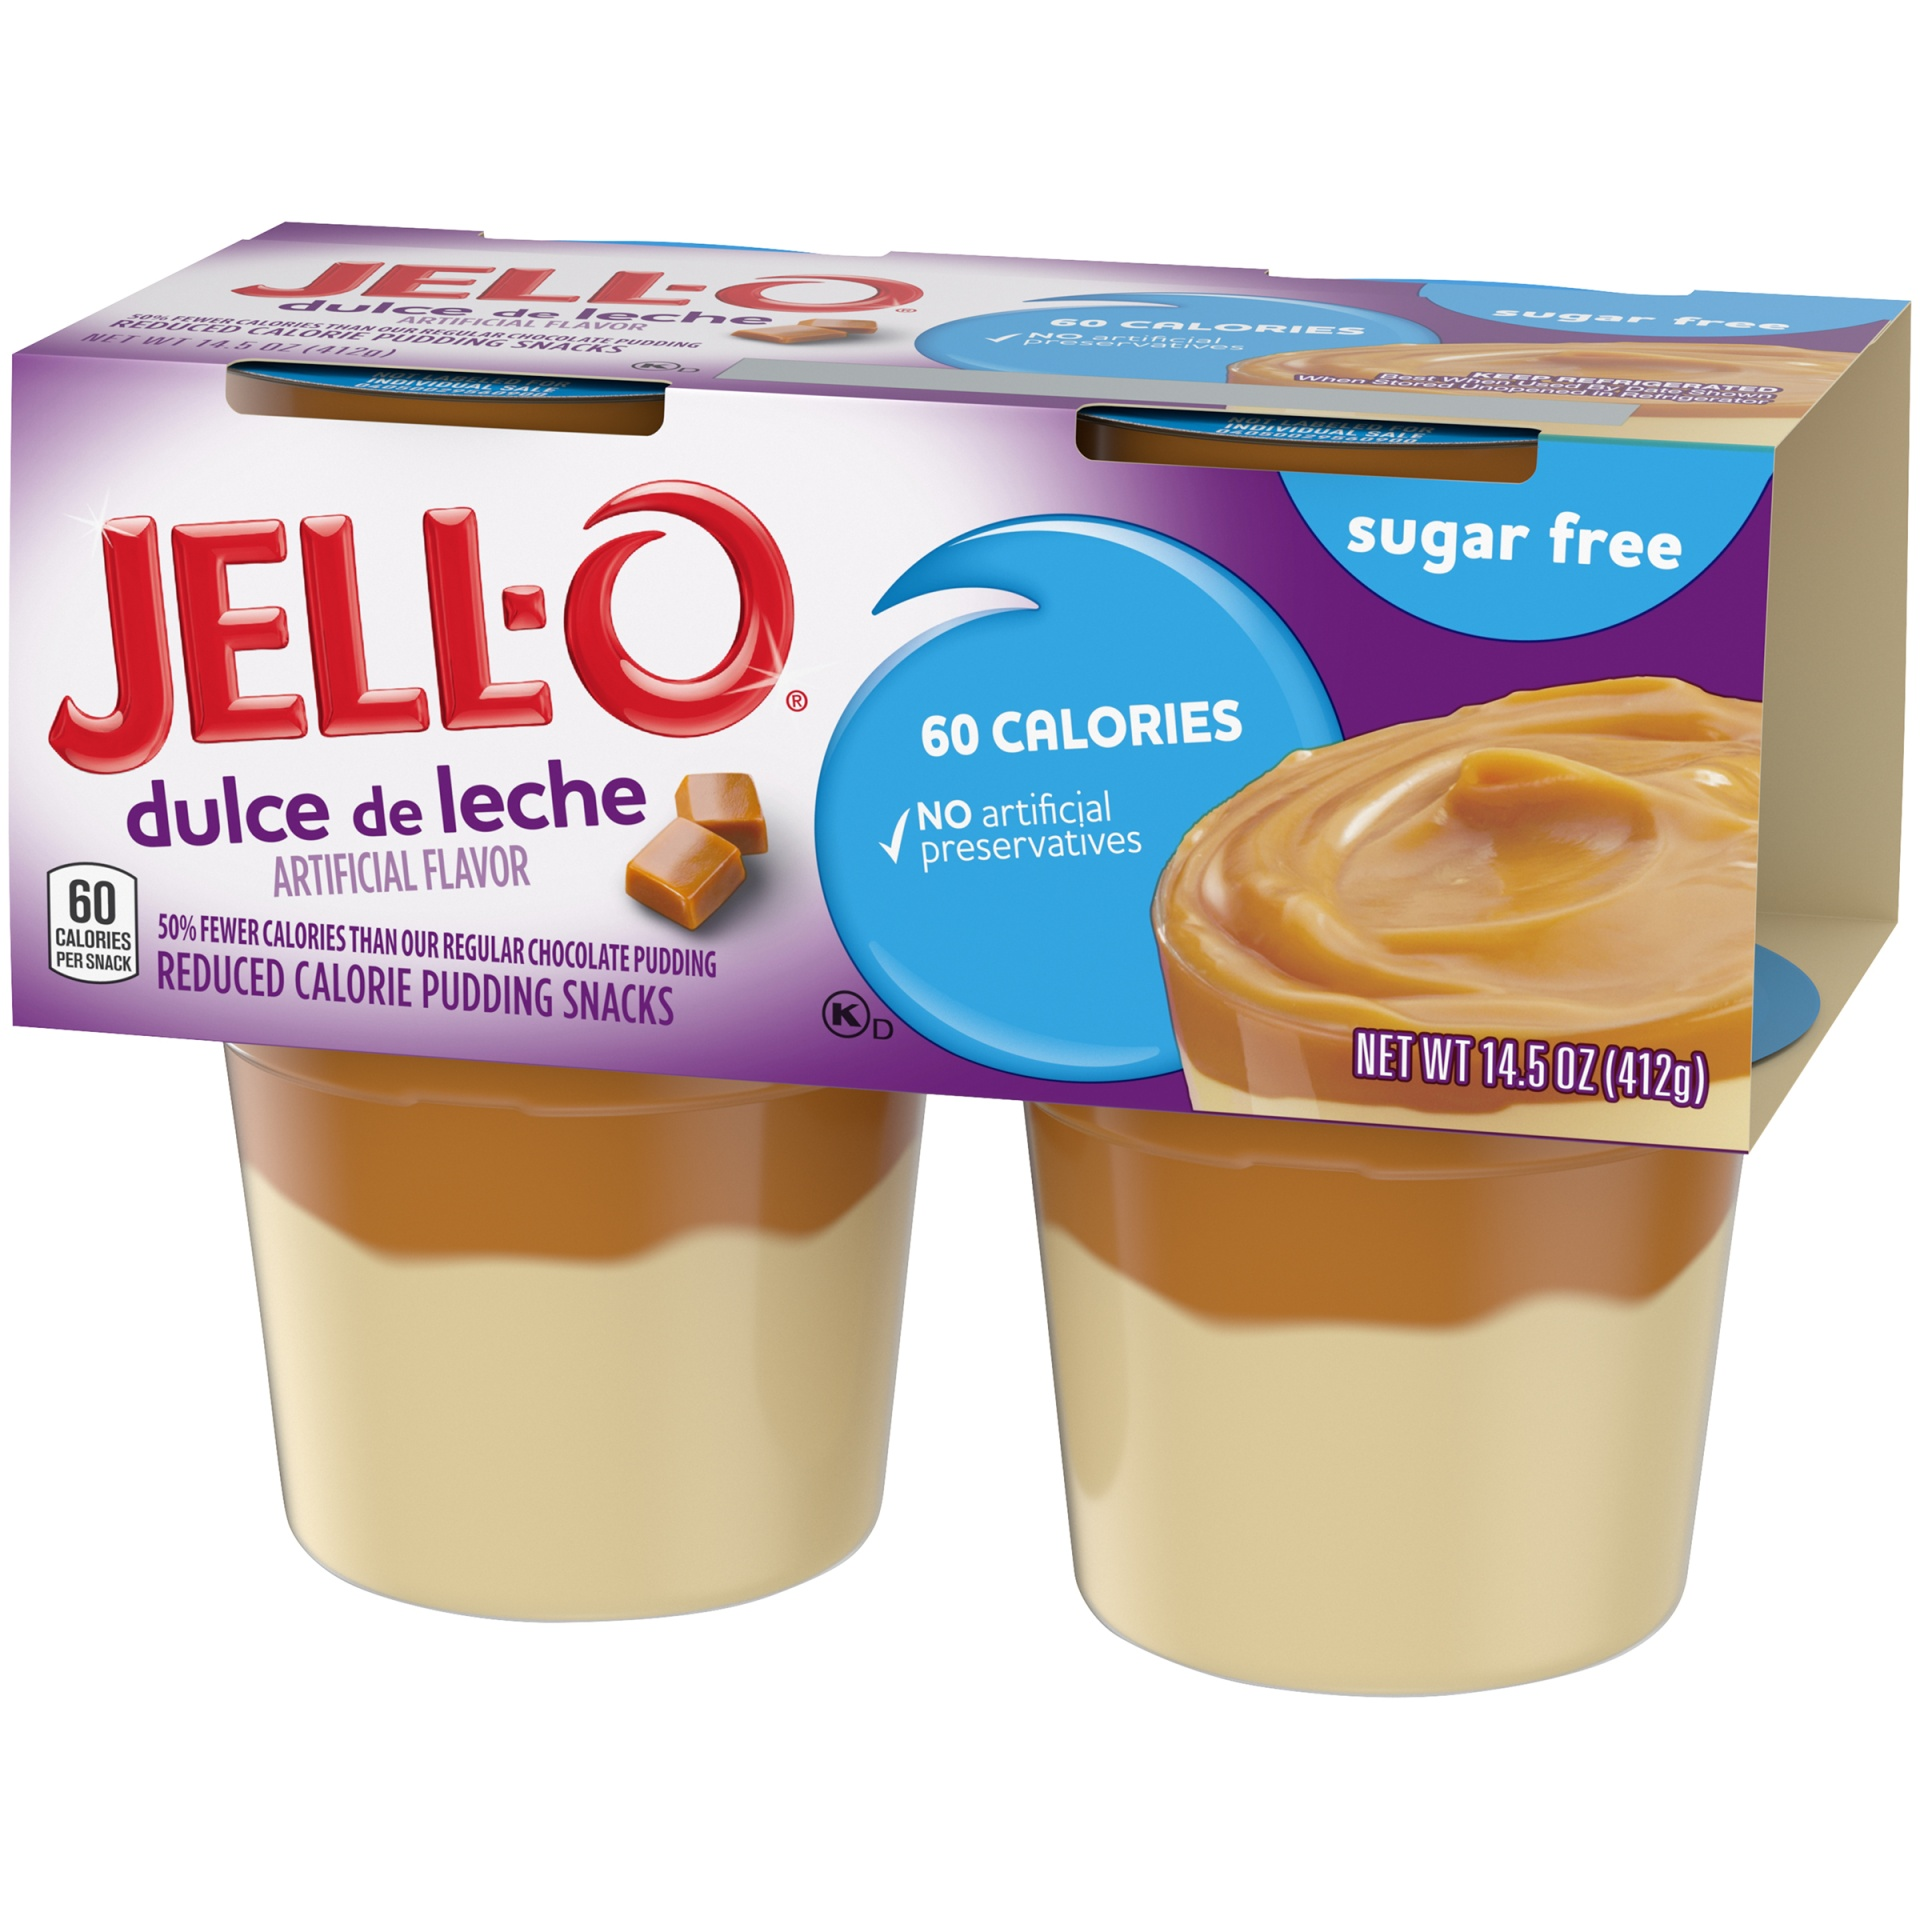 slide 3 of 6, Jell-O Sugar Free Ready to Eat Dulce de Leche Pudding, 4 ct - 14.5 oz Package,